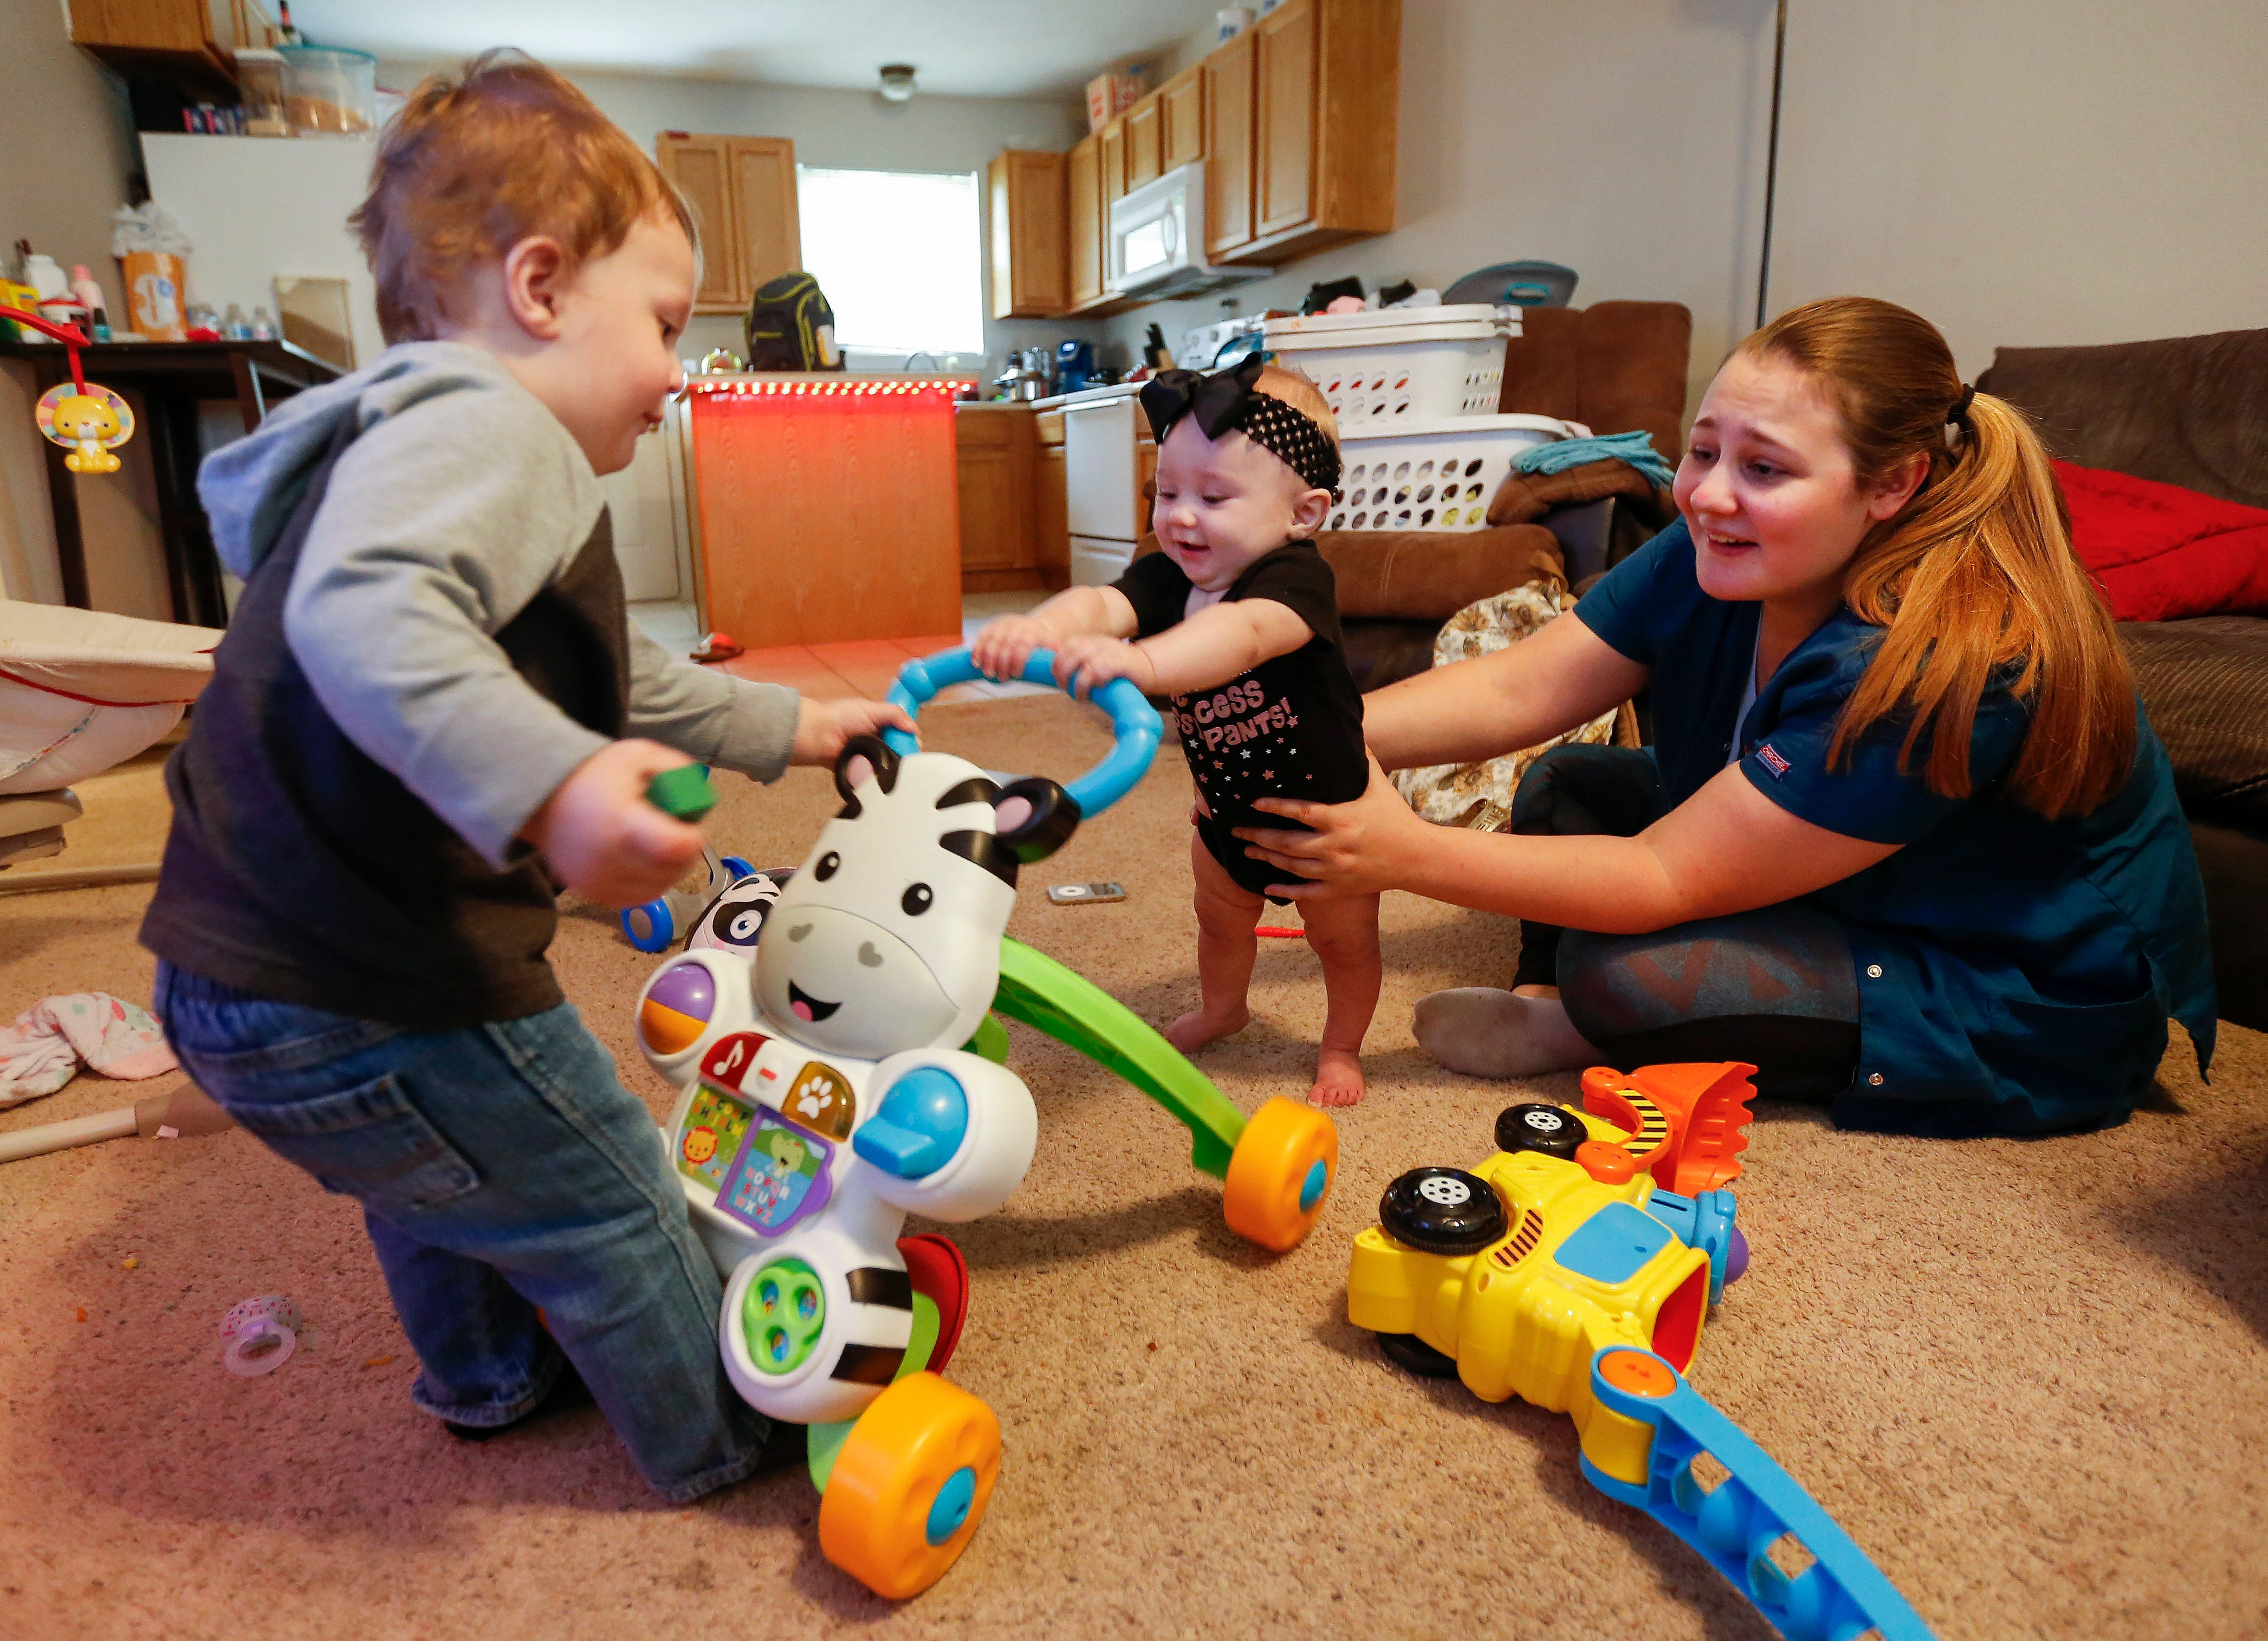 Annie Dillard steadies her daughter Moxxi Bateman, 7 months, as her son Axton Bateman, 18 months, pulls on a toy she was using to hold herself up at their home in Ozark on Wednesday, Sep. 27, 2018.